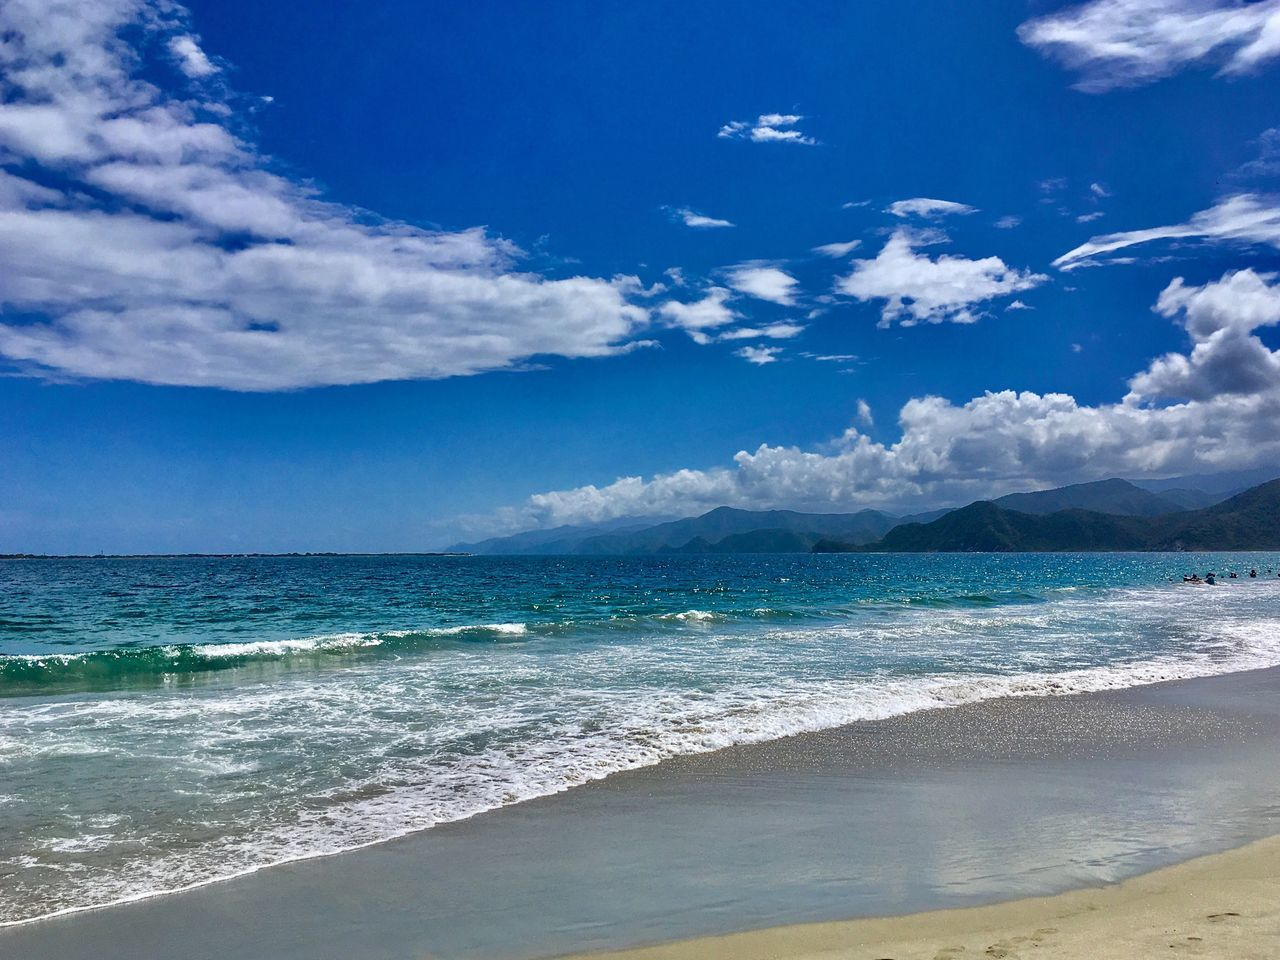 What a Paradise... Sea Sky Beach Scenics Water Blue Beauty In Nature Cloud - Sky Horizon Over Water Nature Tranquility Day Sand Outdoors Wave Clouds Wind Cloud Nature Island Life Lifestyles Paradise Paradise Beach Venezuela